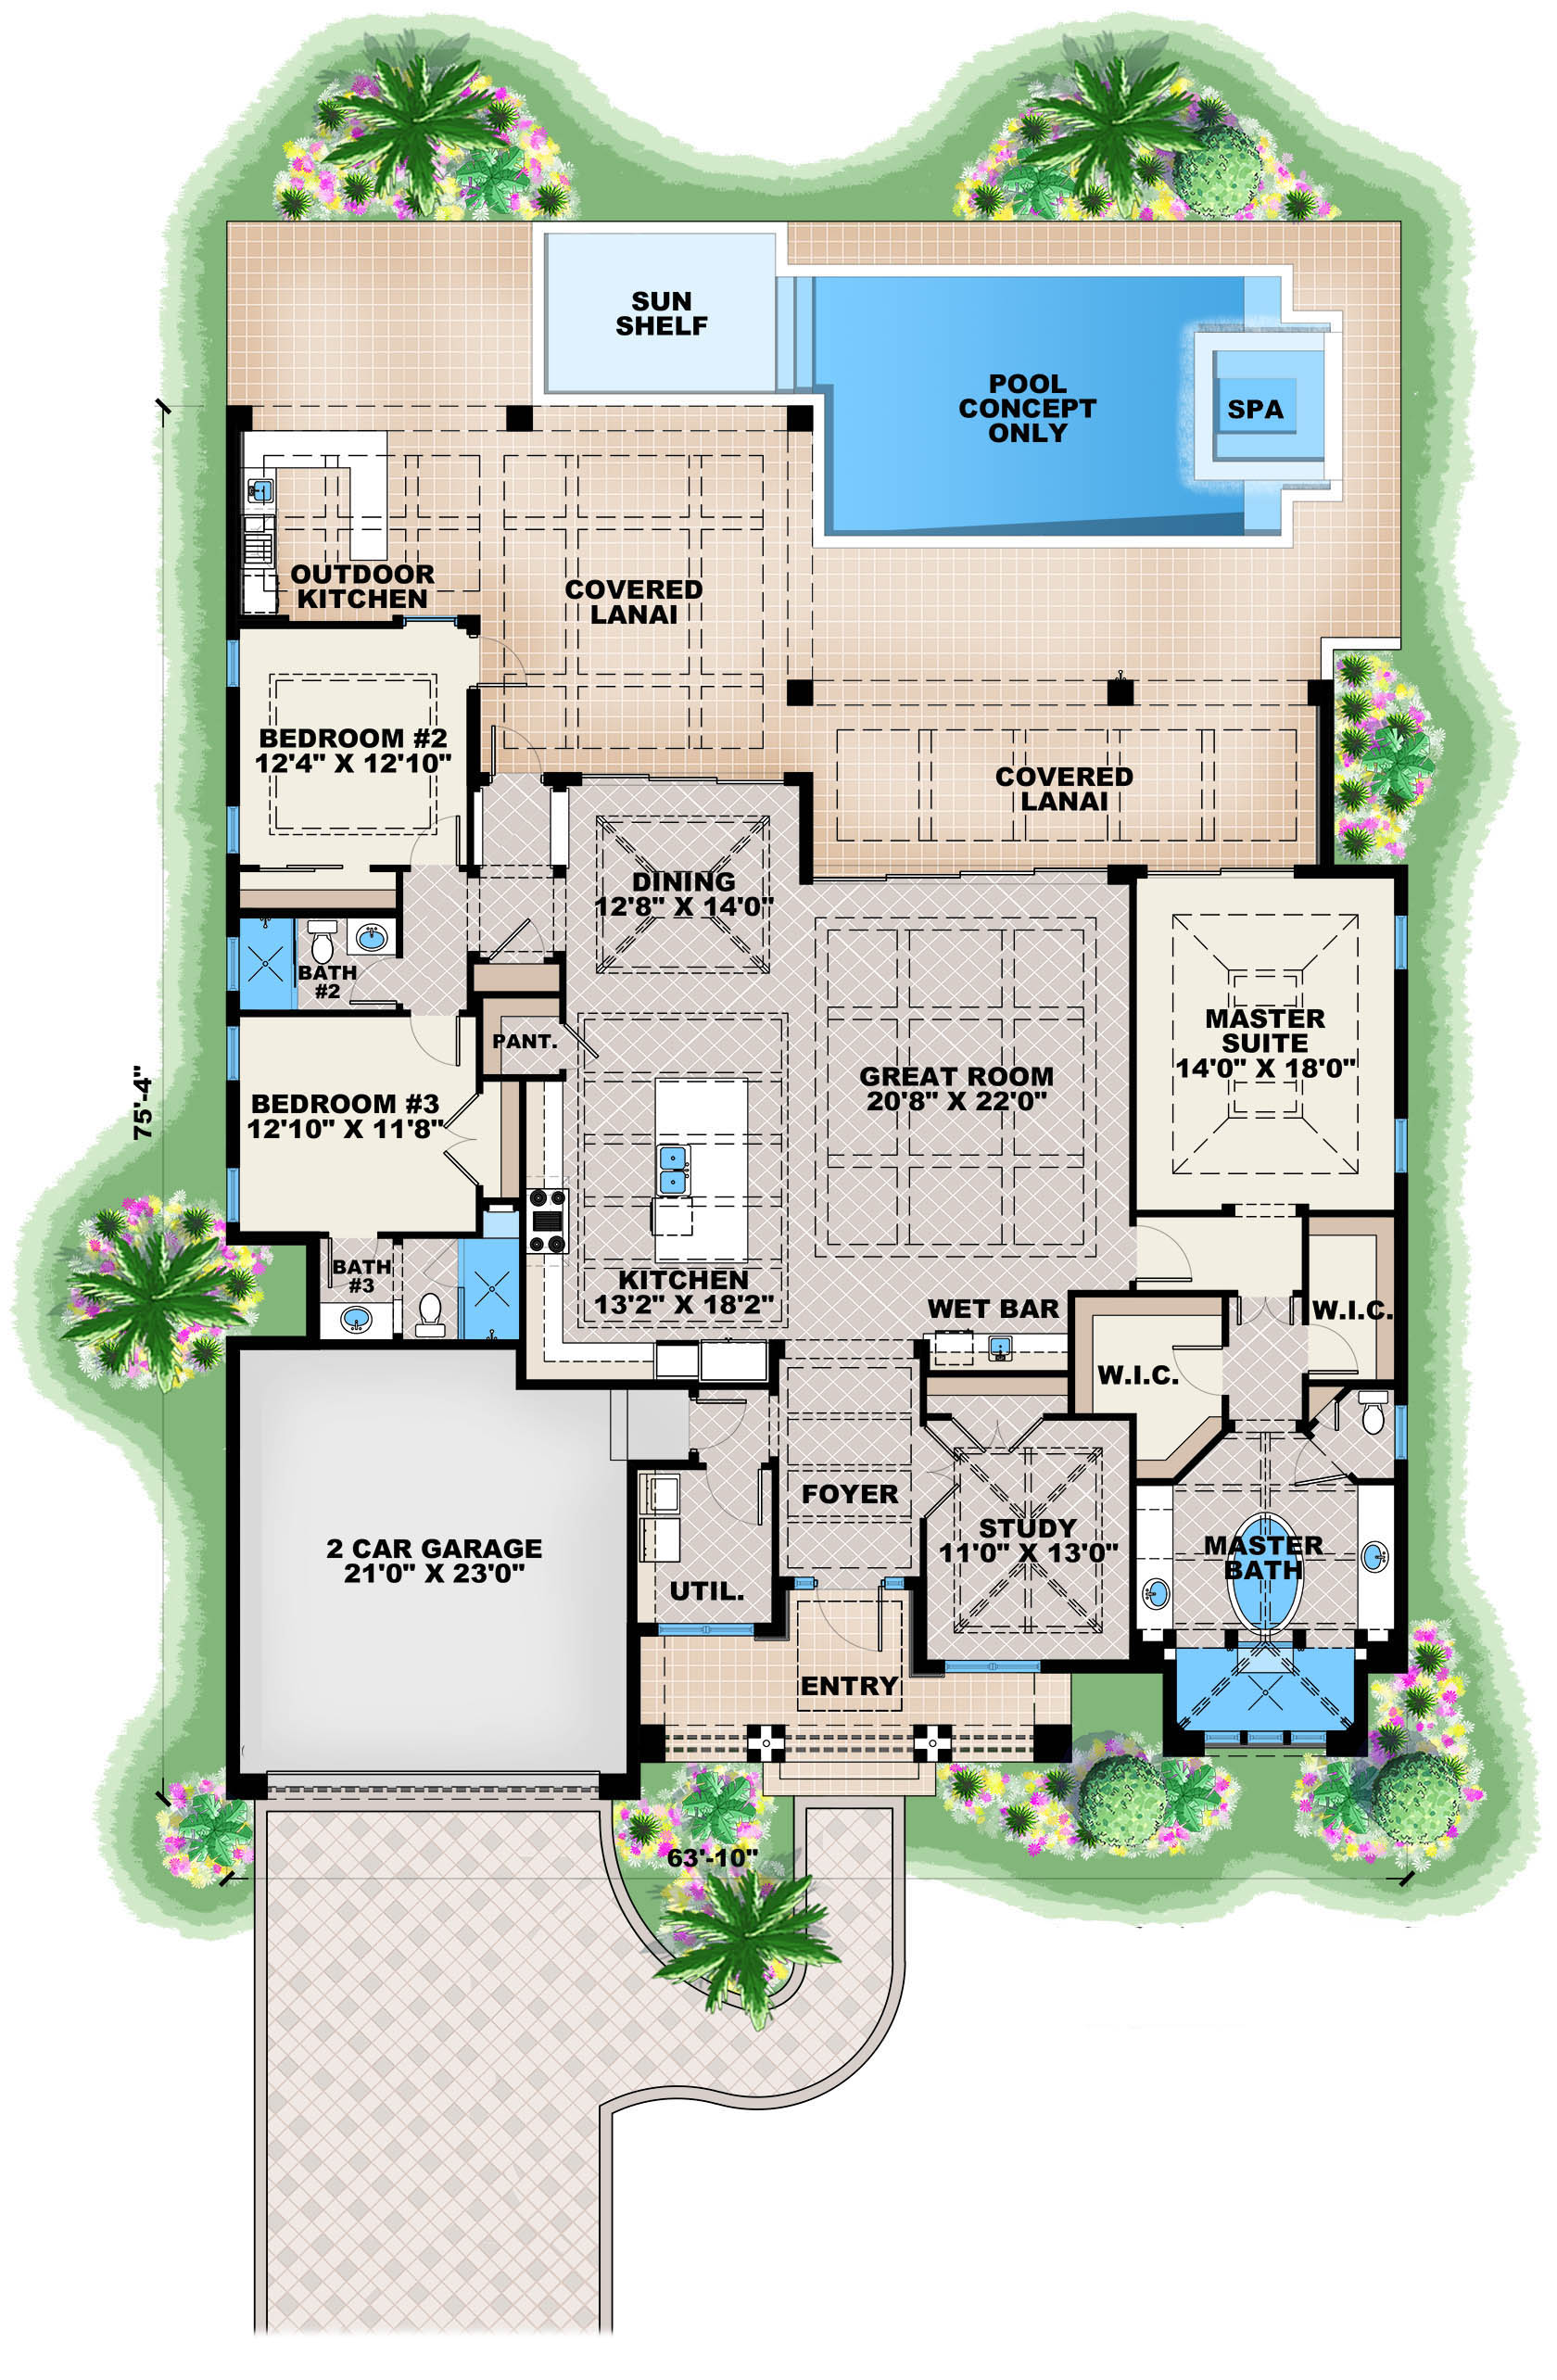 Master Bedroom Floorplans Contemporary House Plan 175 1134 3 Bedrm 2684 Sq Ft